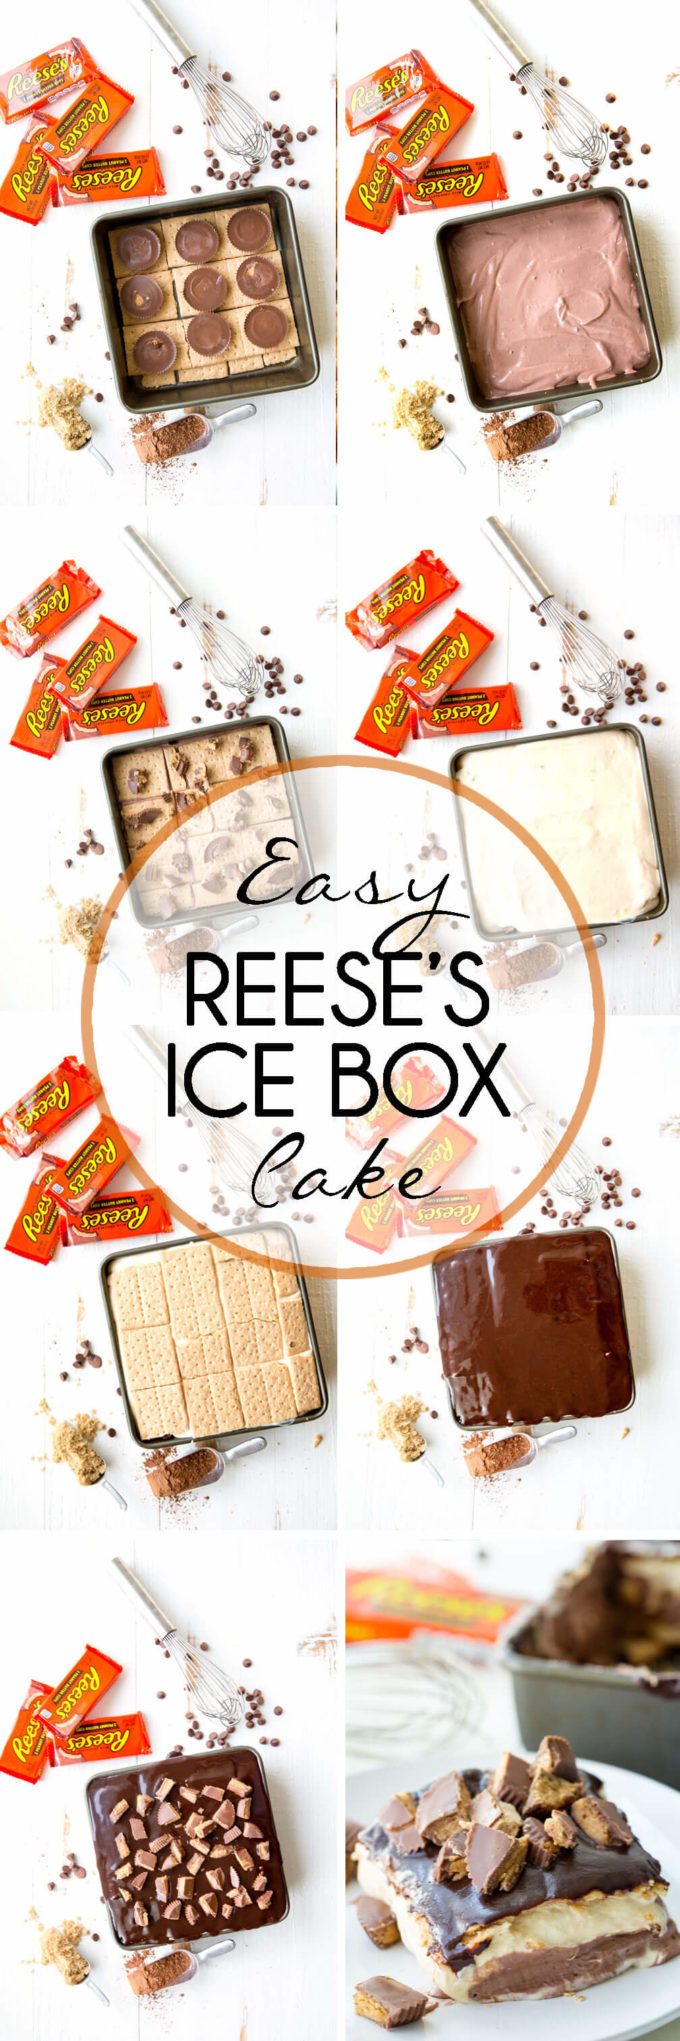 Reese's Ice Box Cake, layers of sweets covered in hot fudge sauce and peanut butter goodness